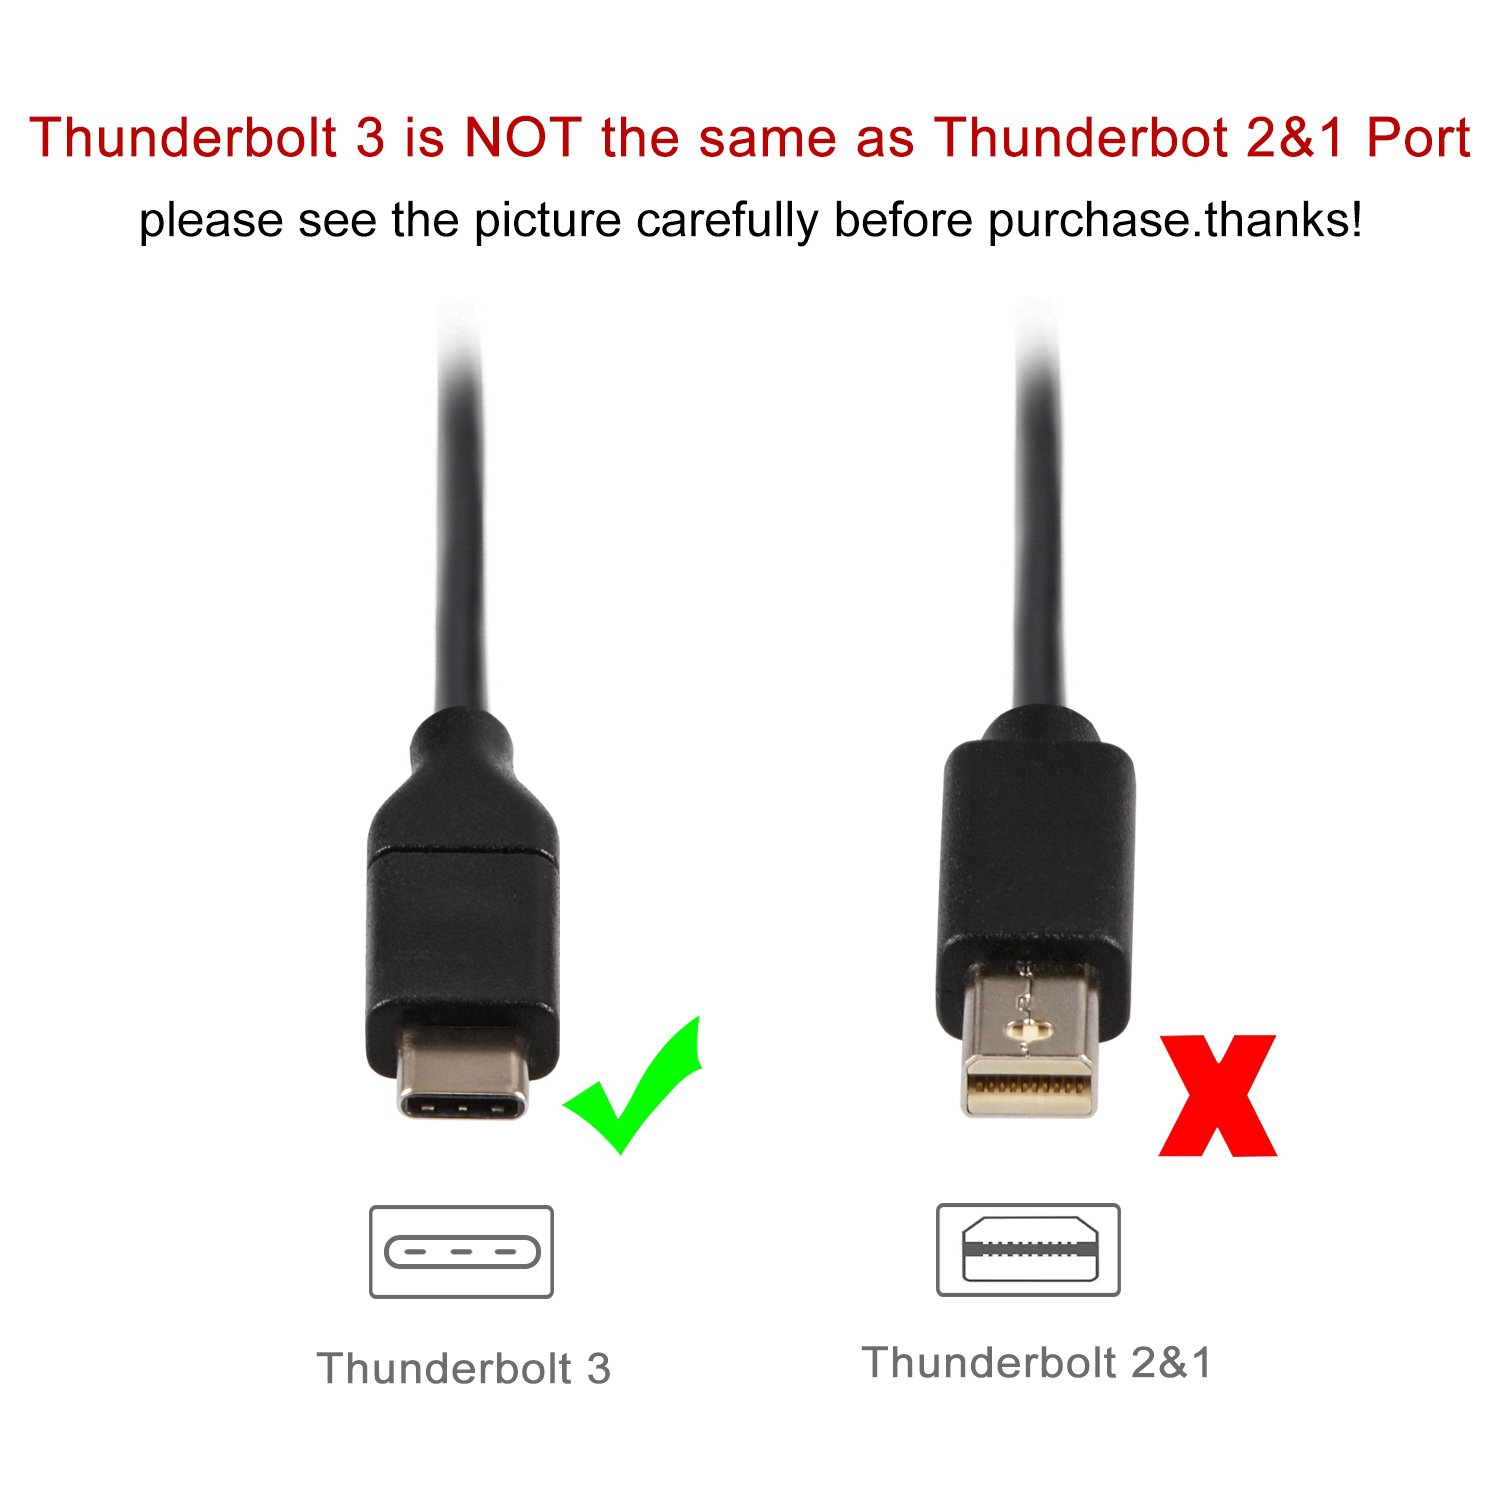 USB-C /& Thunderbolt 3 Compatible to HDTV HDMI Cable Supporting 4K J/&D USB Type C 9 Feet USB C to HDMI 4K 30Hz